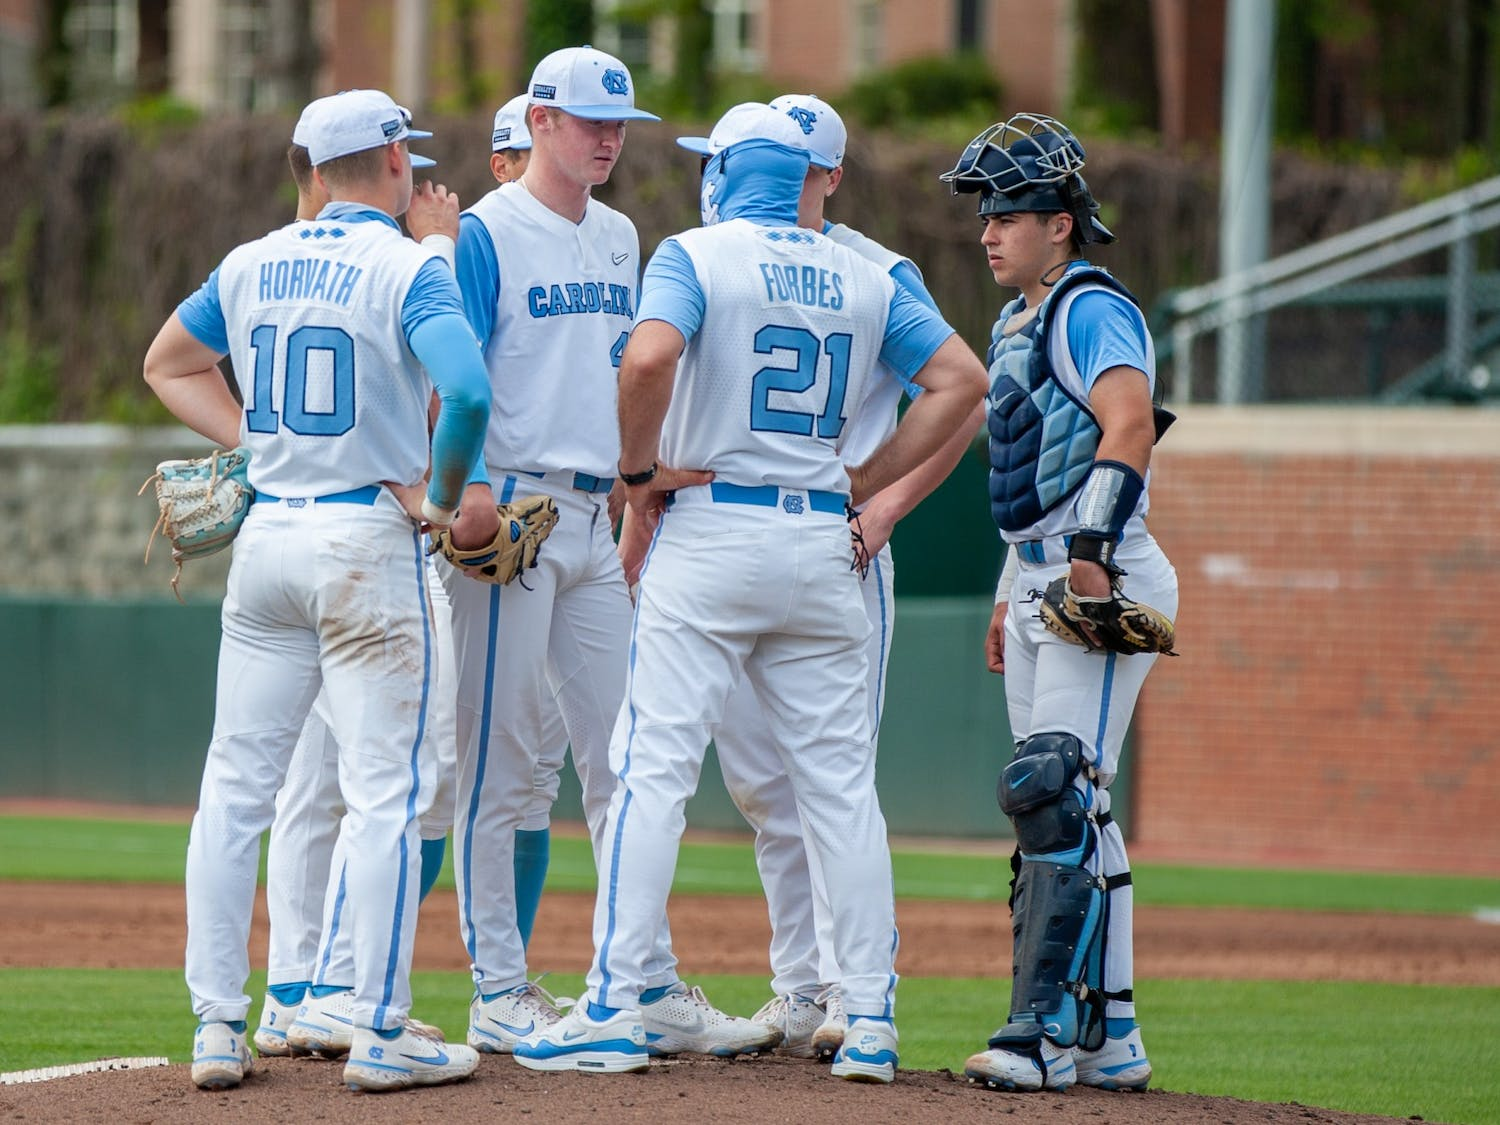 UNC baseball's Head Coach Scott Forbes pays a mound visit during the game against Duke on Saturday Apr. 10 2021 at Boshamer stadium. UNC lost 2-4.